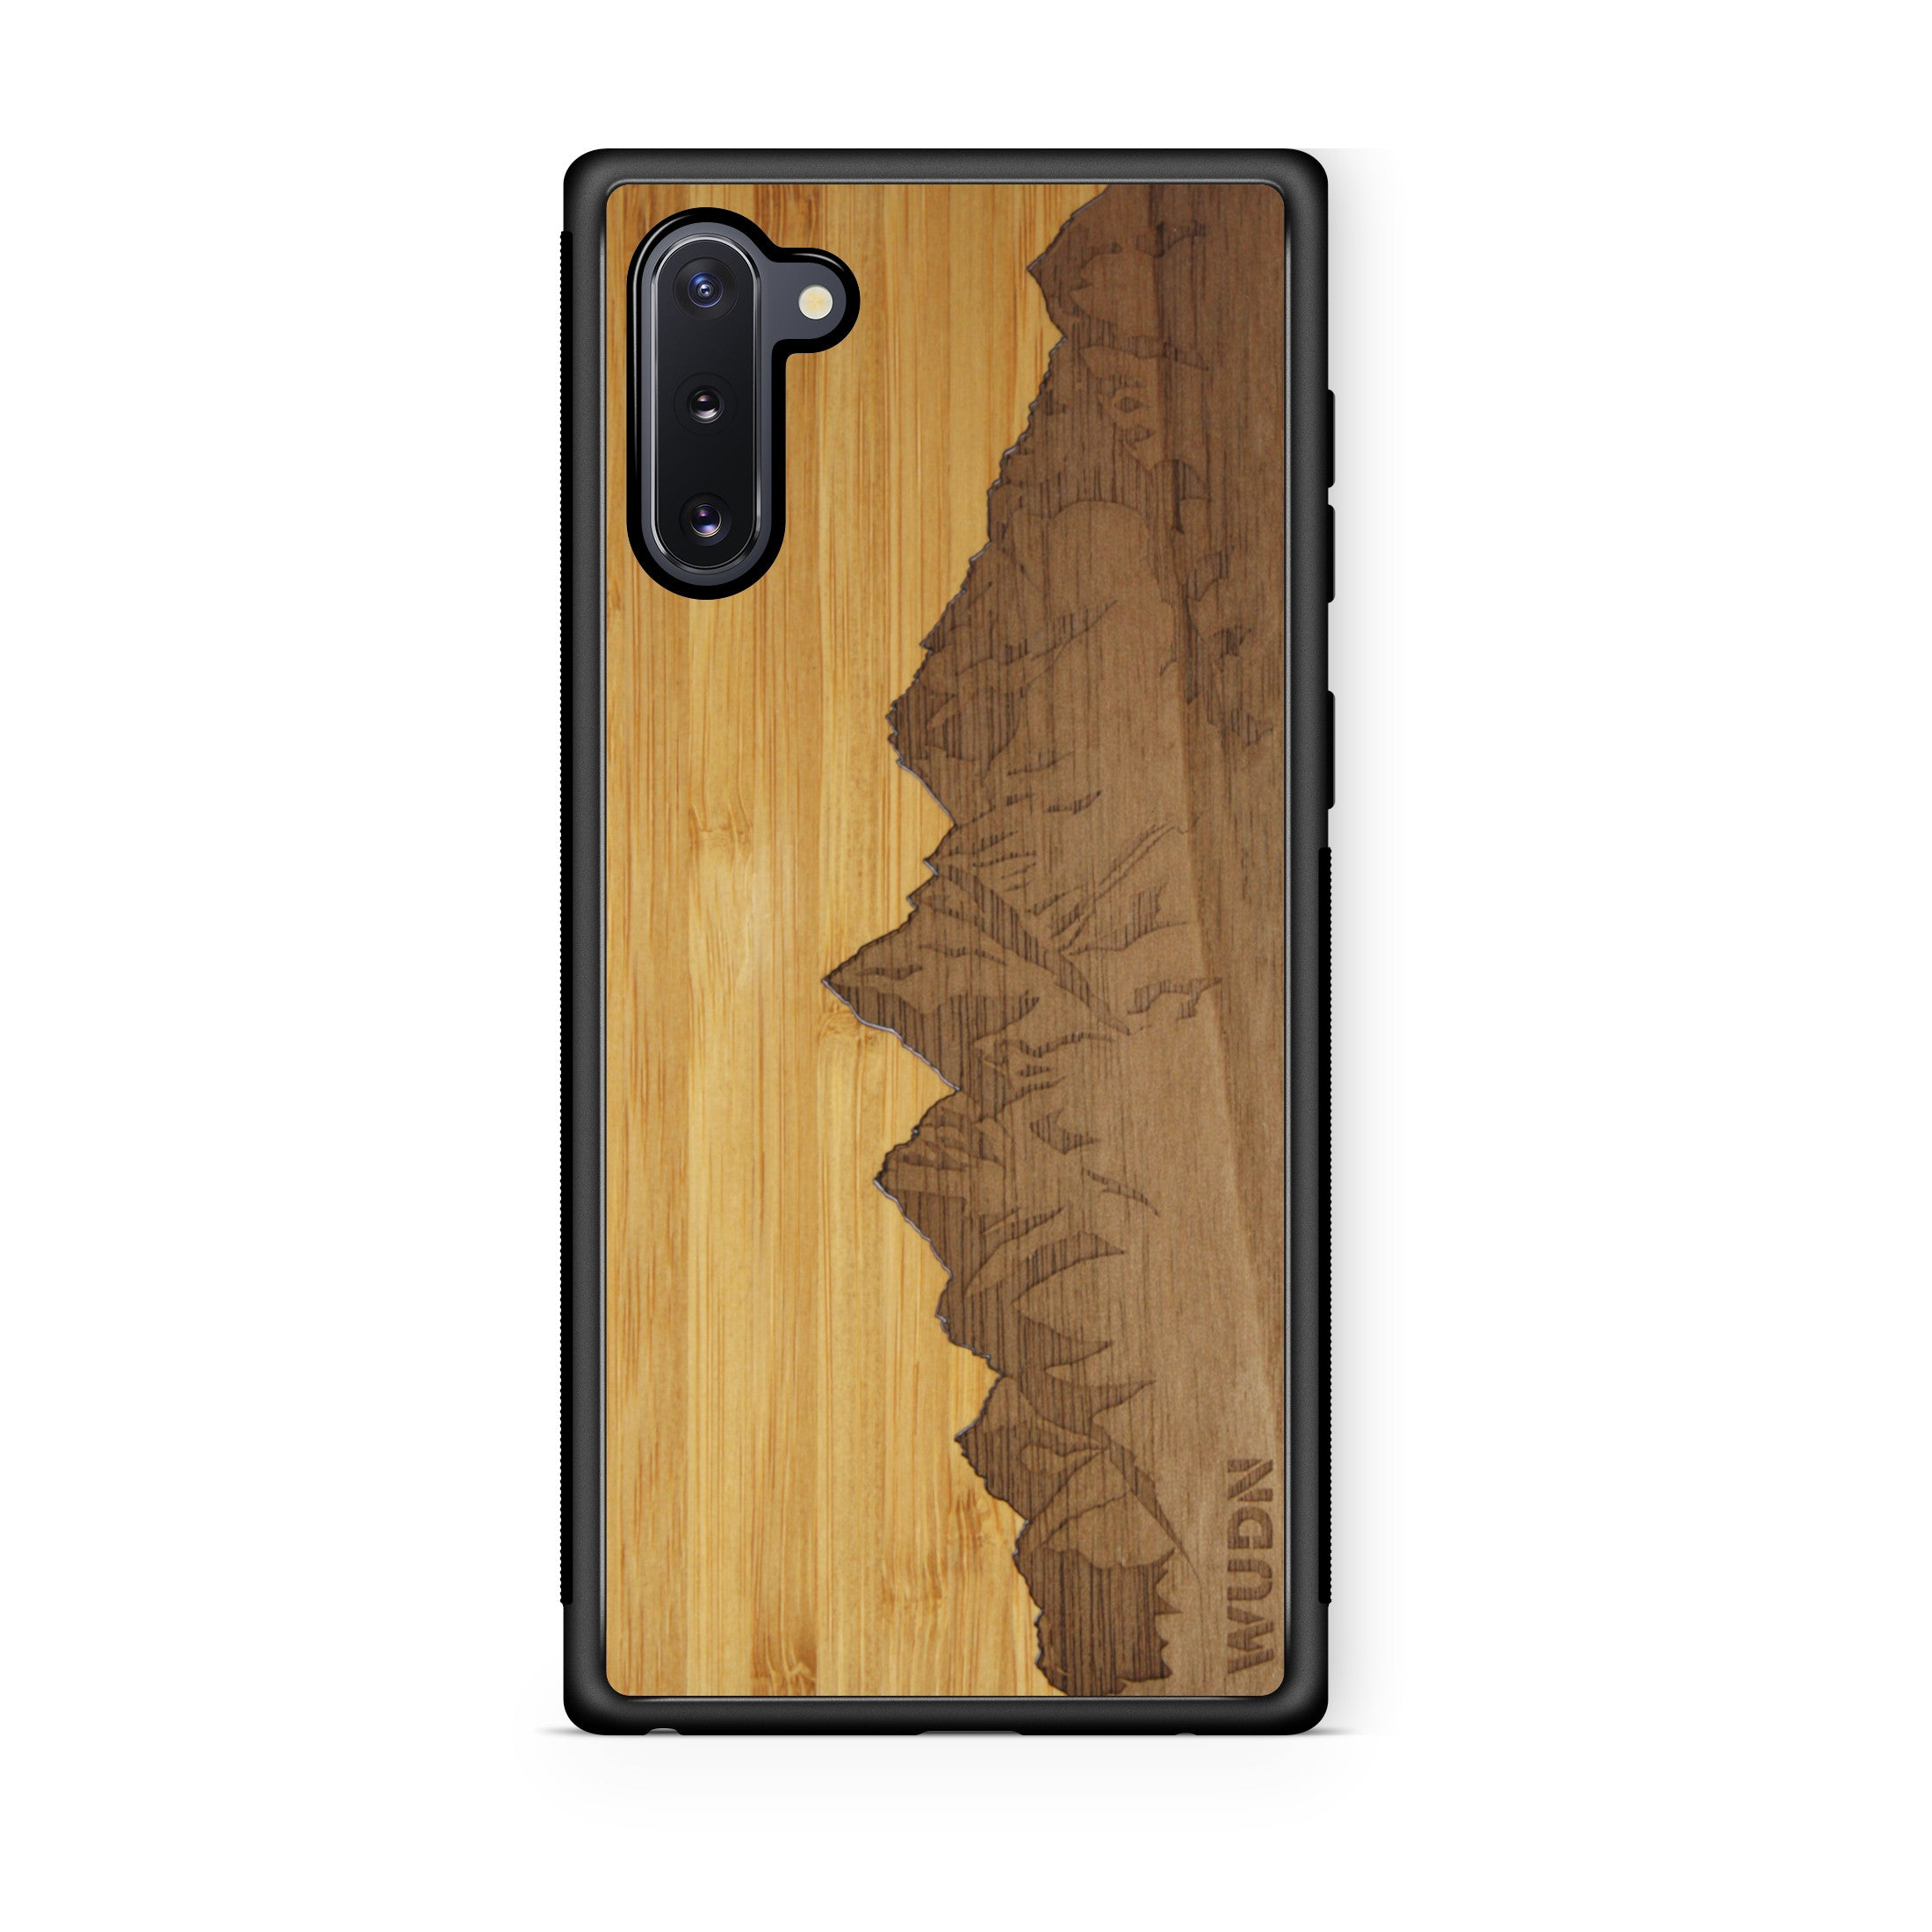 Slim Wooden Phone Case | Sawtooth Mountains Traveler, Cases by WUDN for Galaxy Note 10